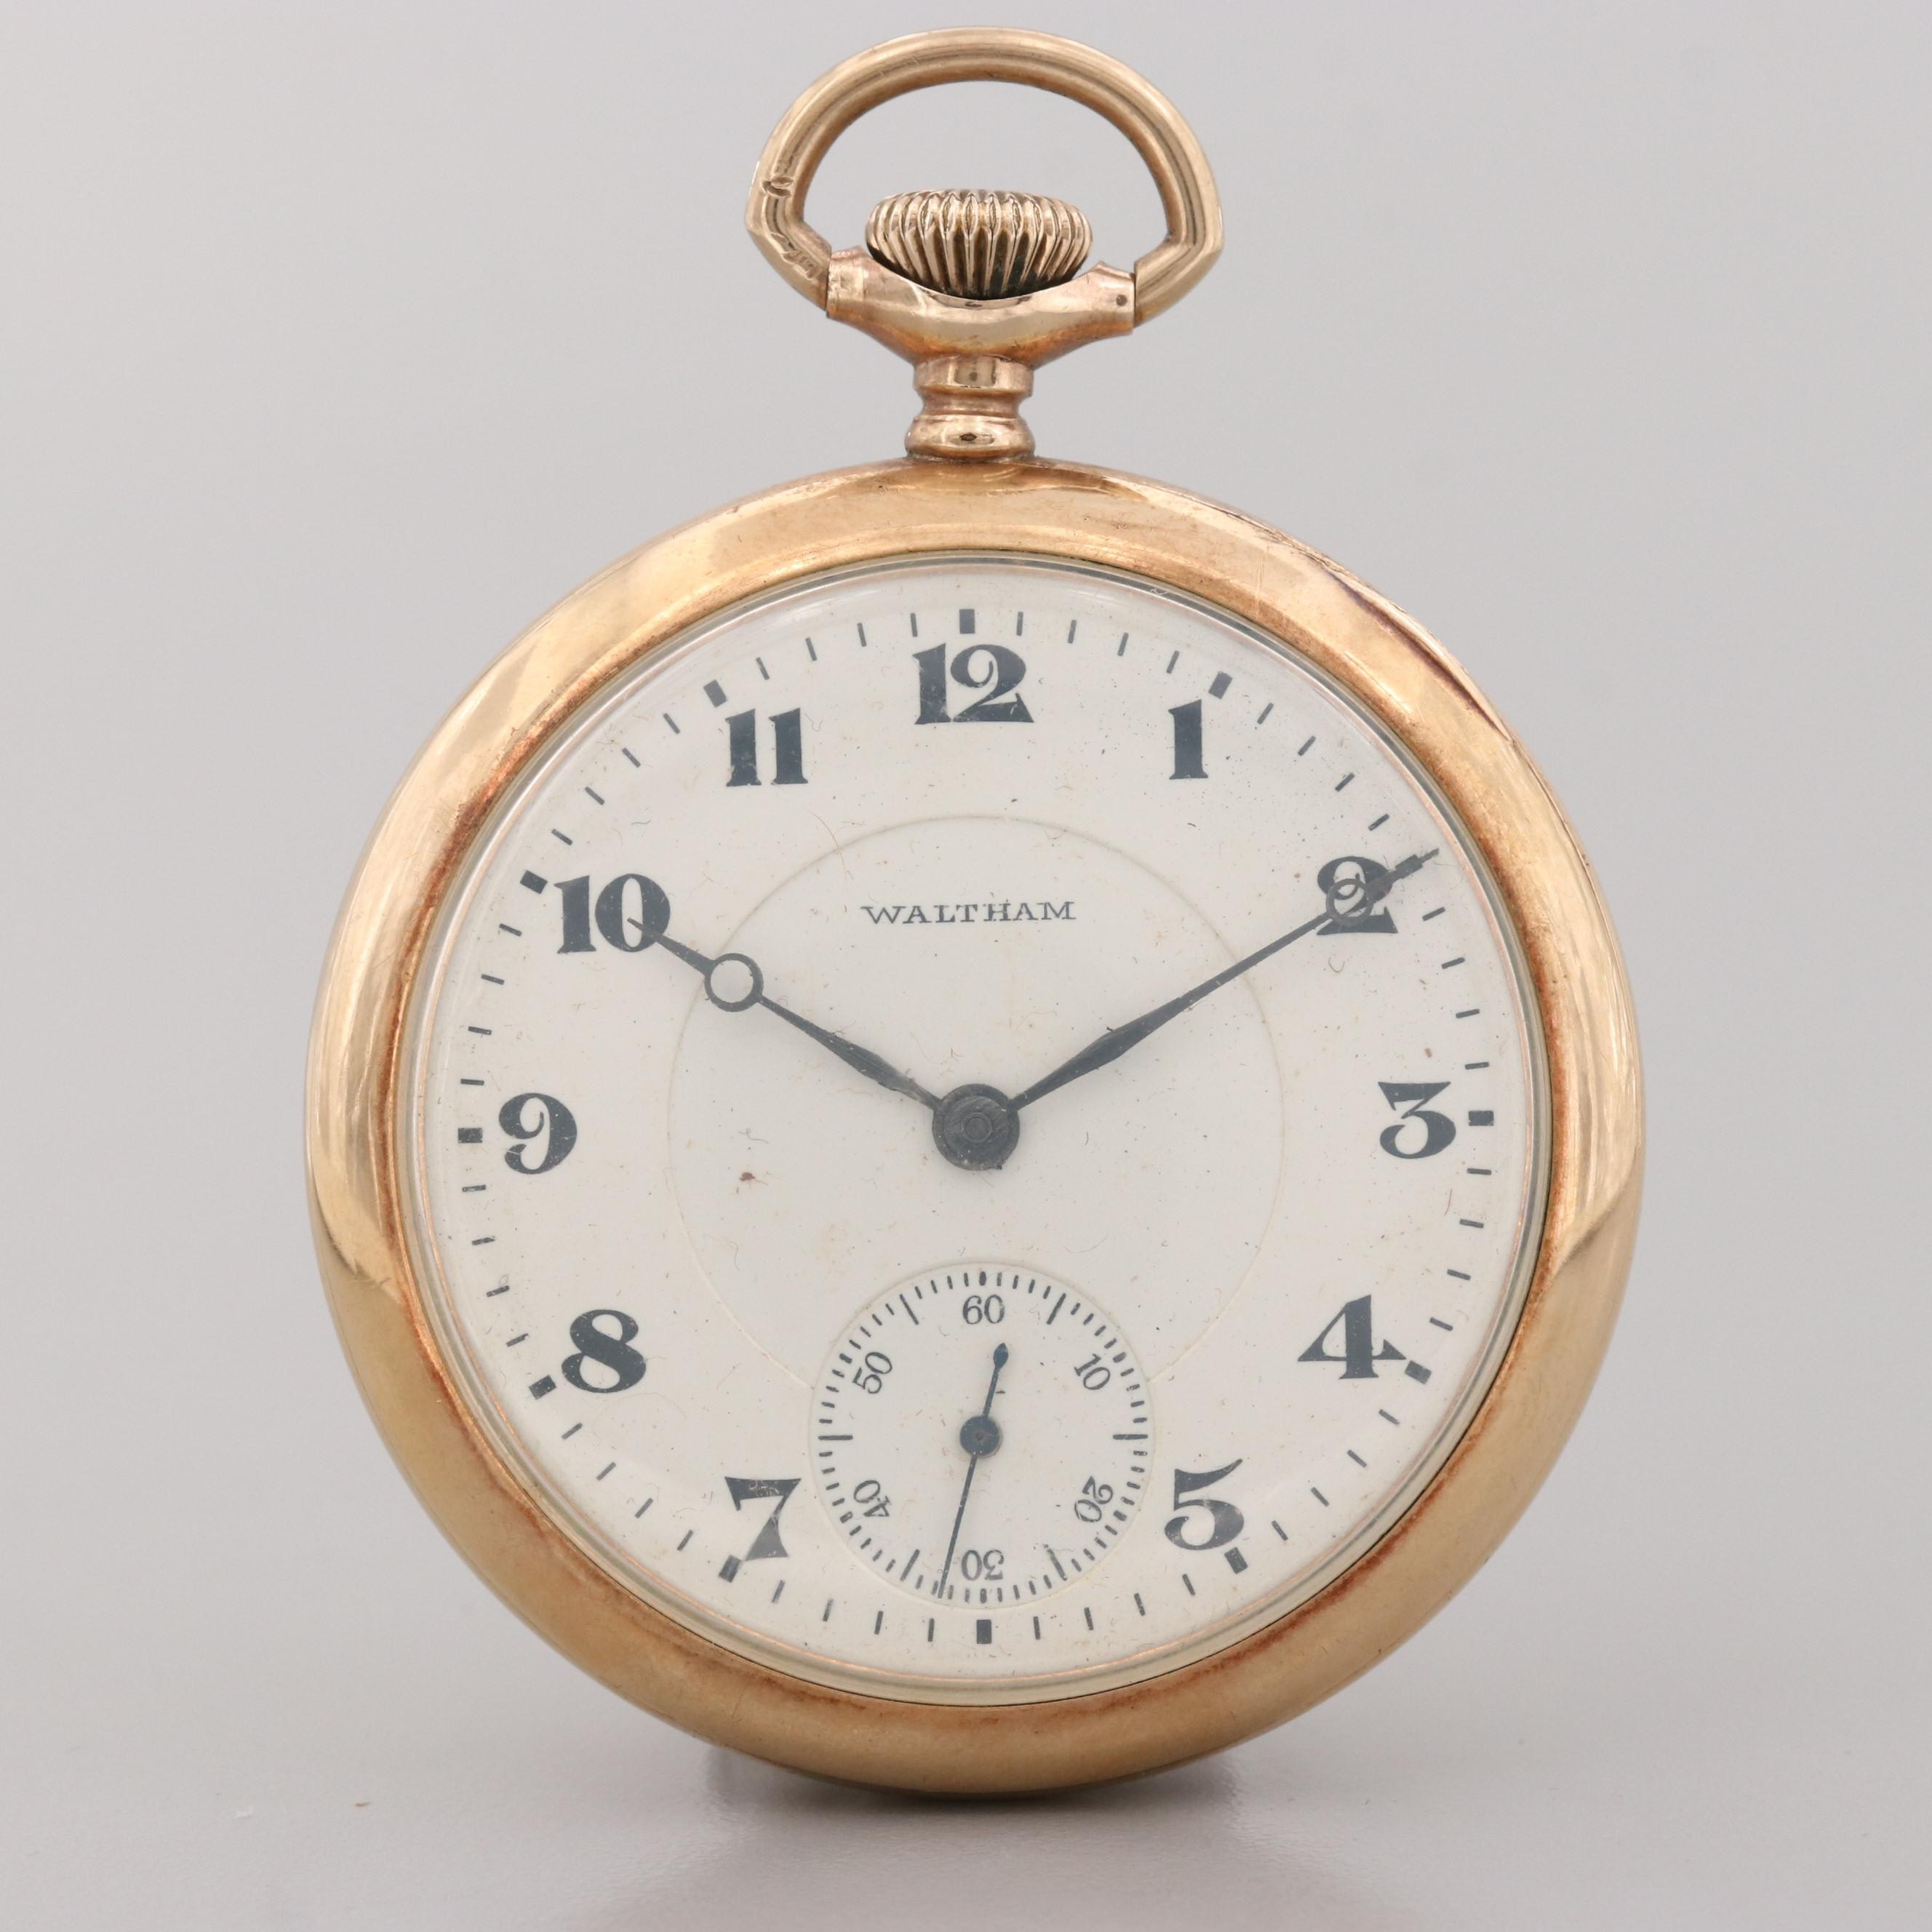 Vintage Waltham Gold Tone Open Face Pocket Watch, 1922